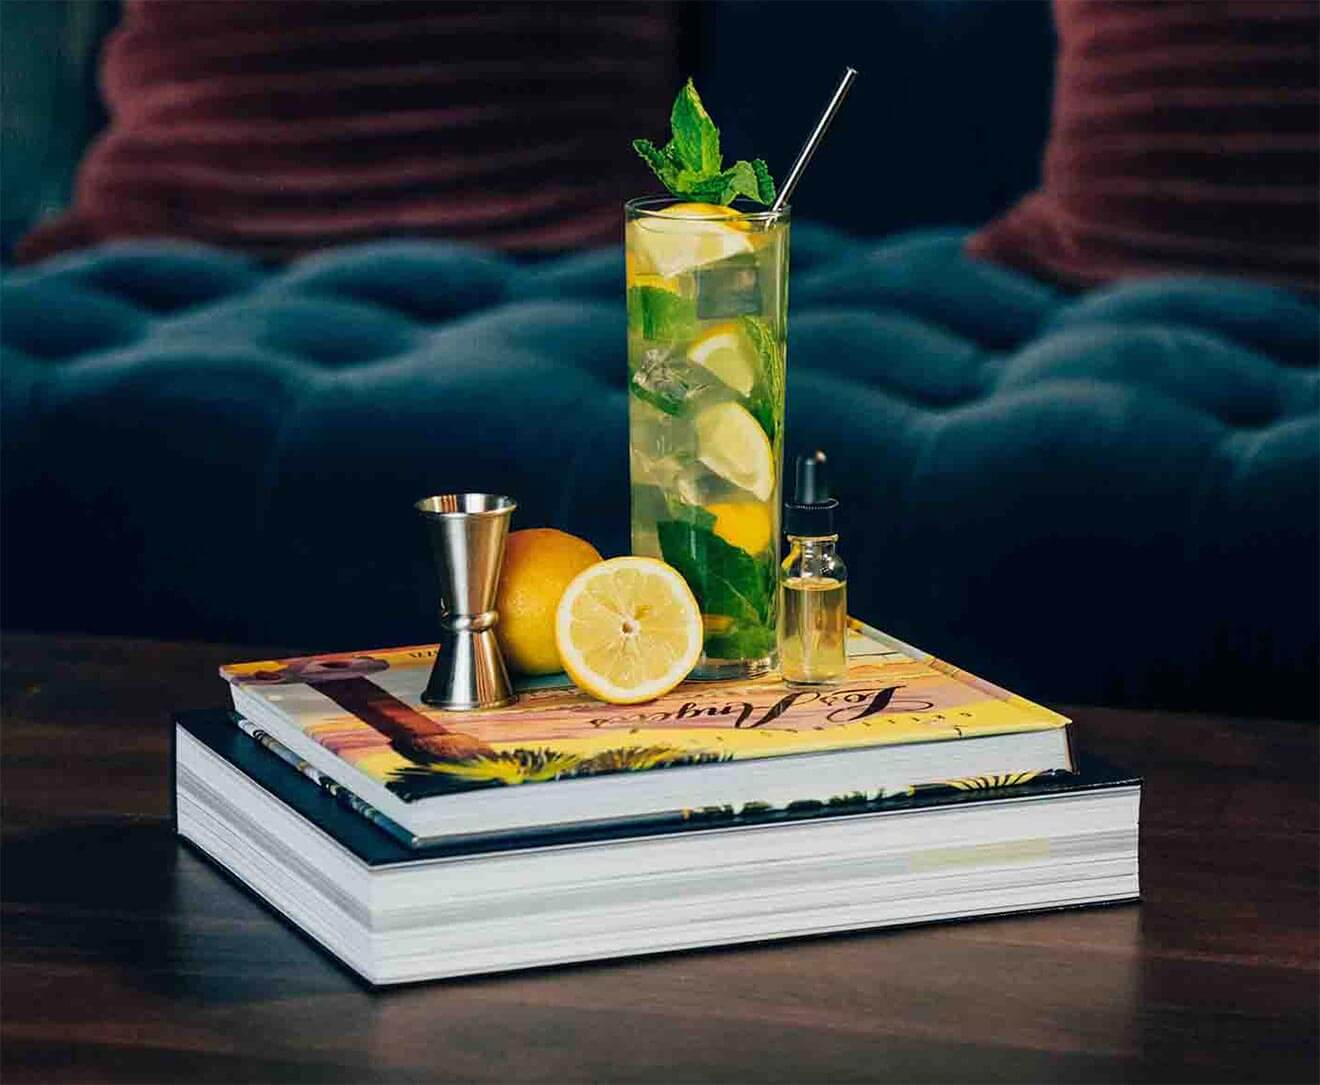 cb tea cocktail with garnishes